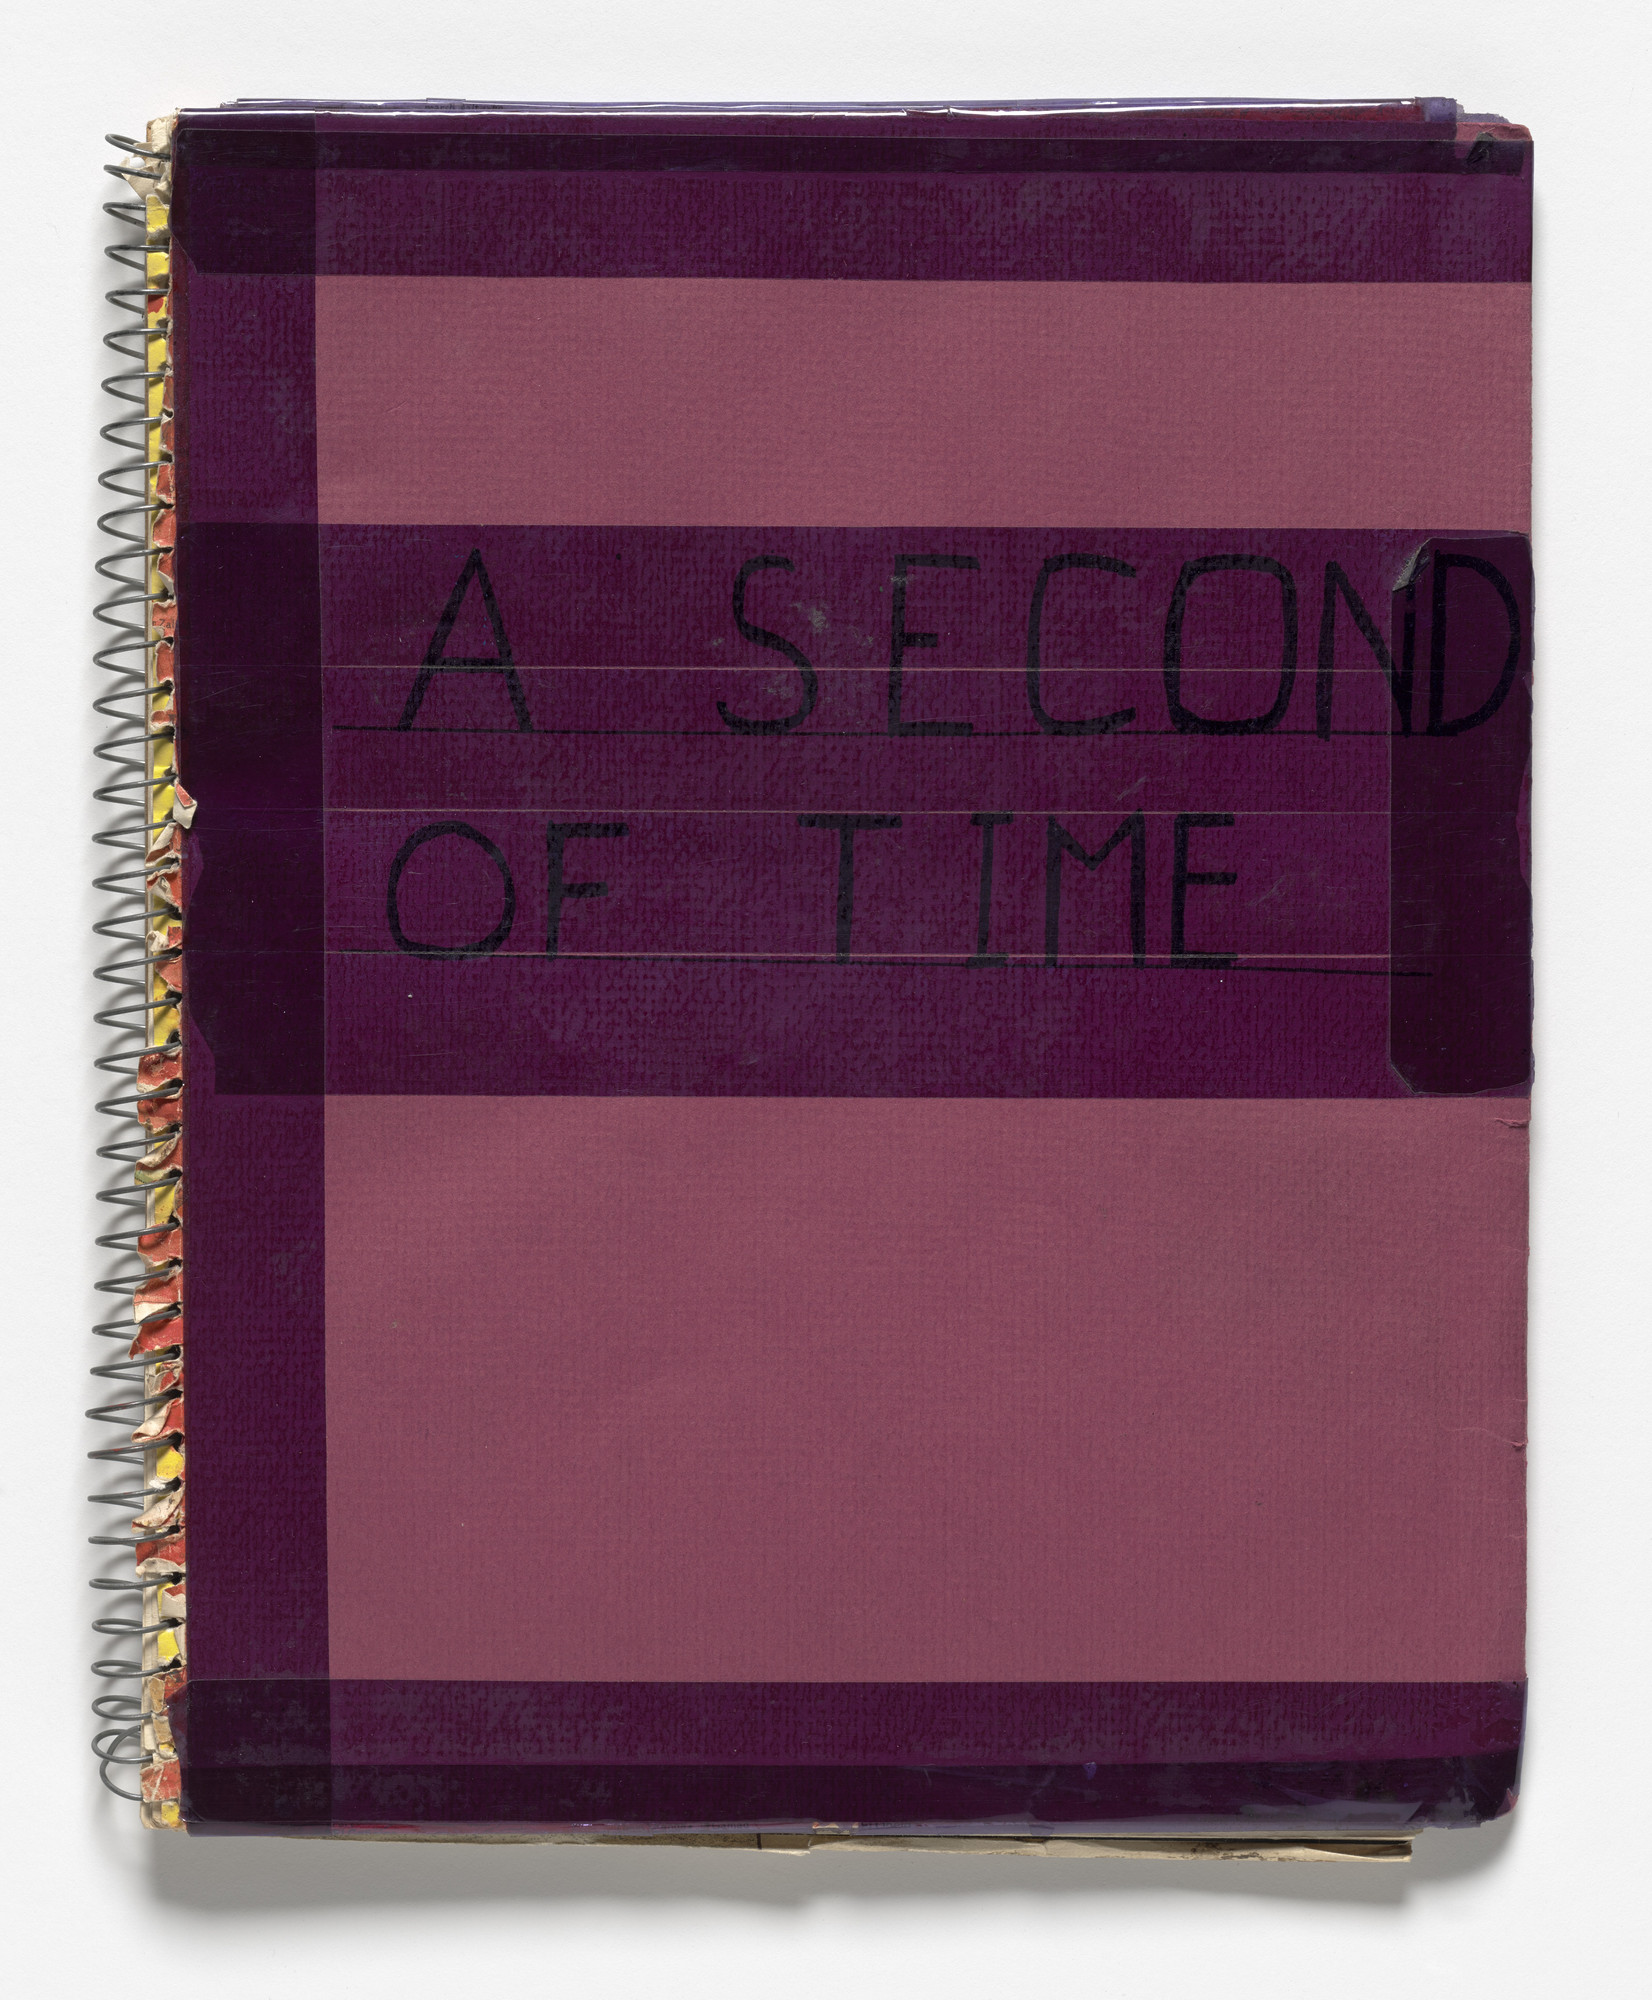 Kathy Acker. A Second of Time. 1978